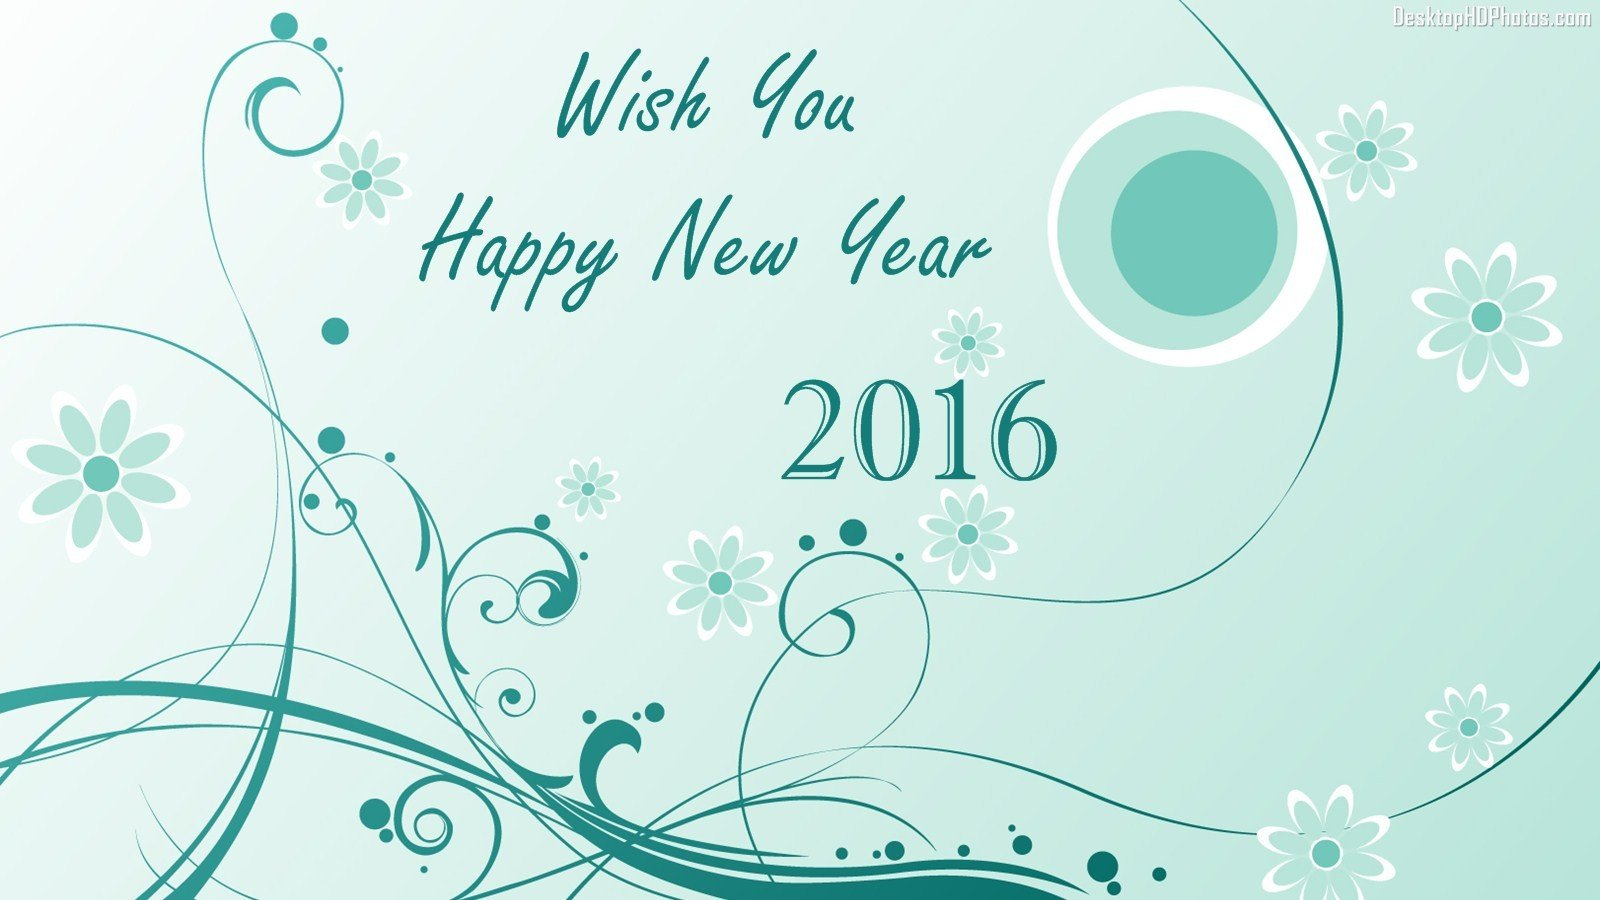 HD Wallpapers Download And Share   Welcome Happy New Year 2016 1600x900